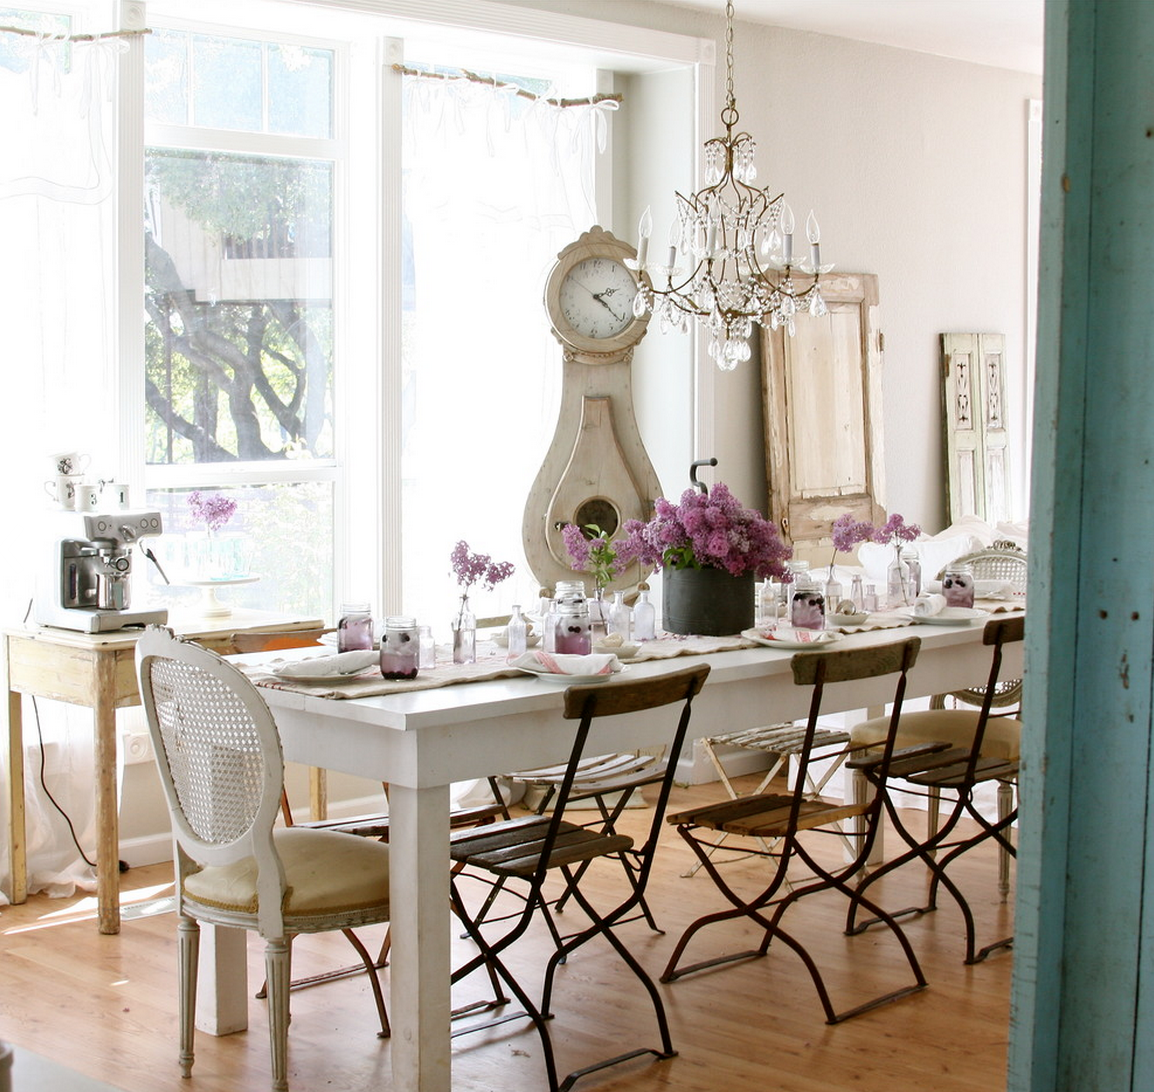 Shabby Chic Interior Design Style. Dining room arrangement and table serving in the classic style for the modern interior rehash